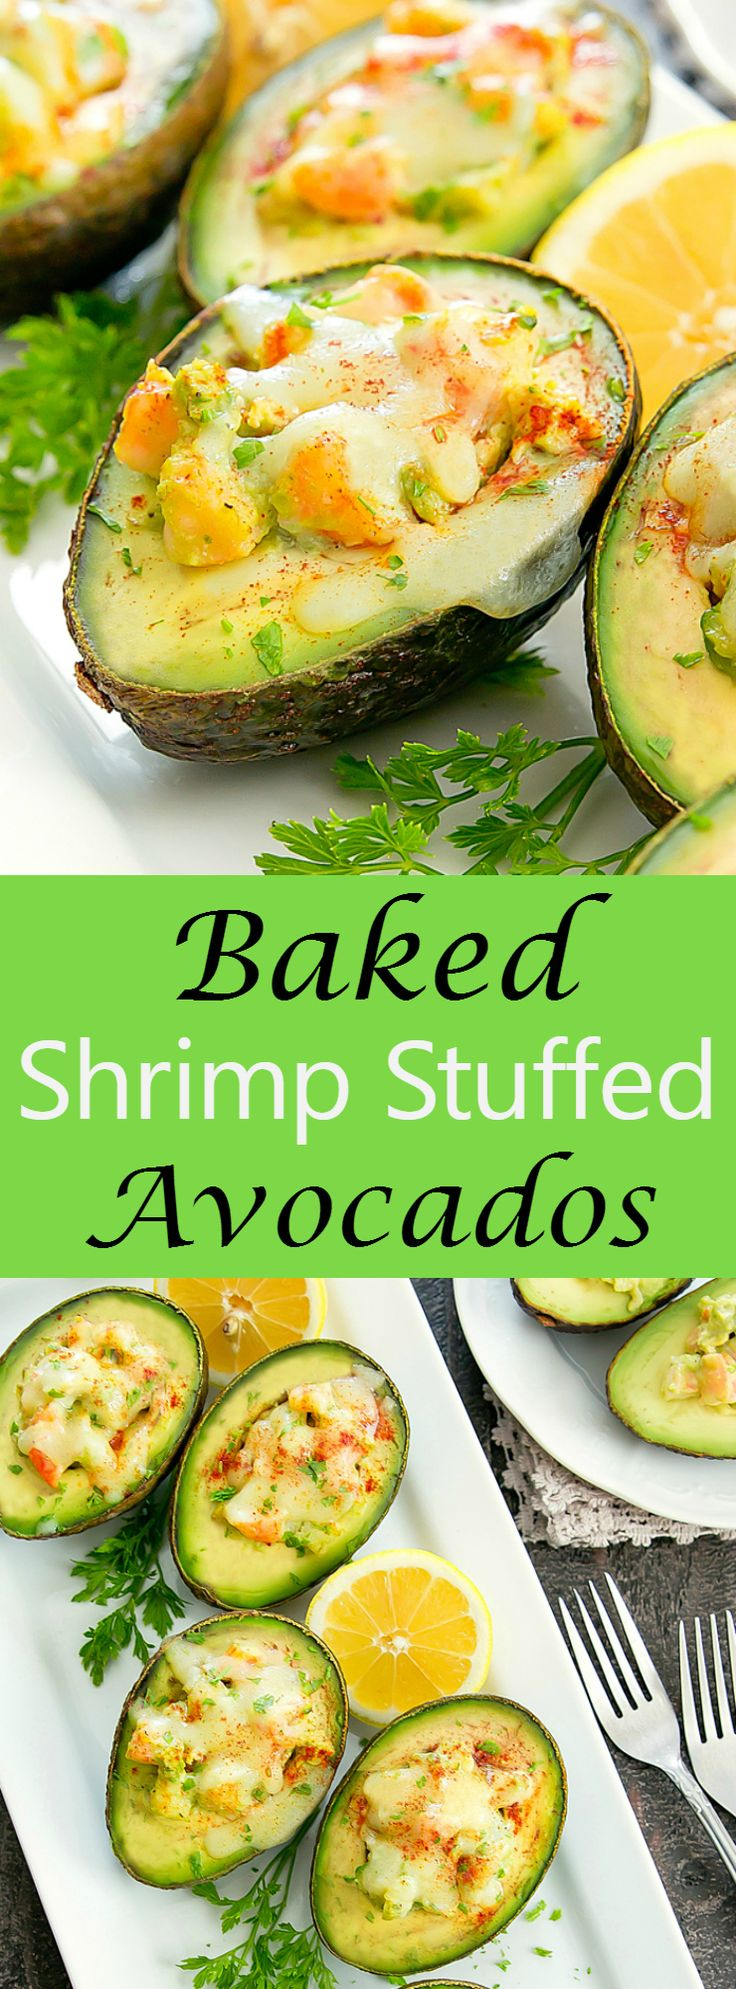 Baked Shrimp Stuffed Avocados. An easy and delicious meal ready in less than 30 minutes.